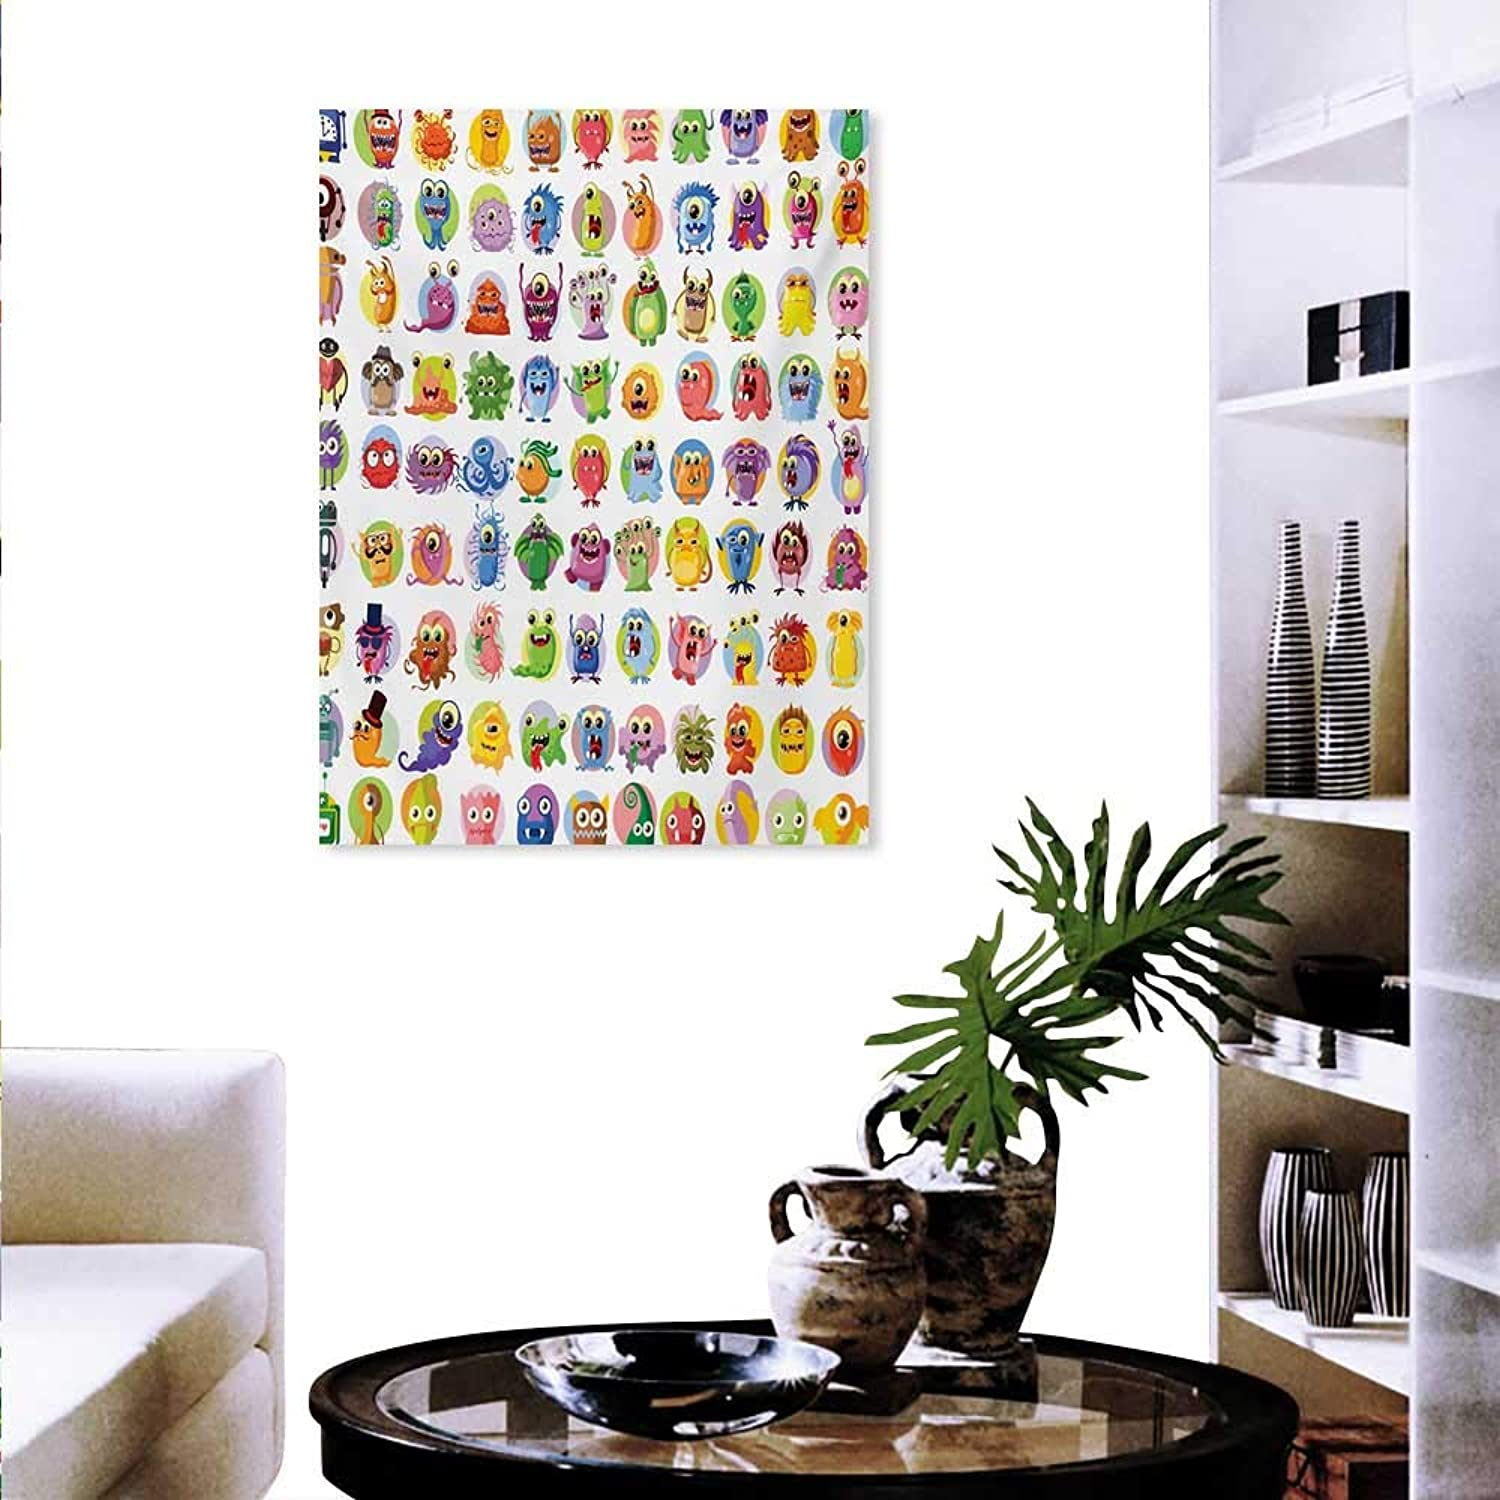 Mannwarehouse Animation Decorate Stickers for Wall Cute Little Graphic Baby Mosters Great for Kids Nursery Room colord Cartoons Art Wall Art Stickers 32 x36  Multicolor